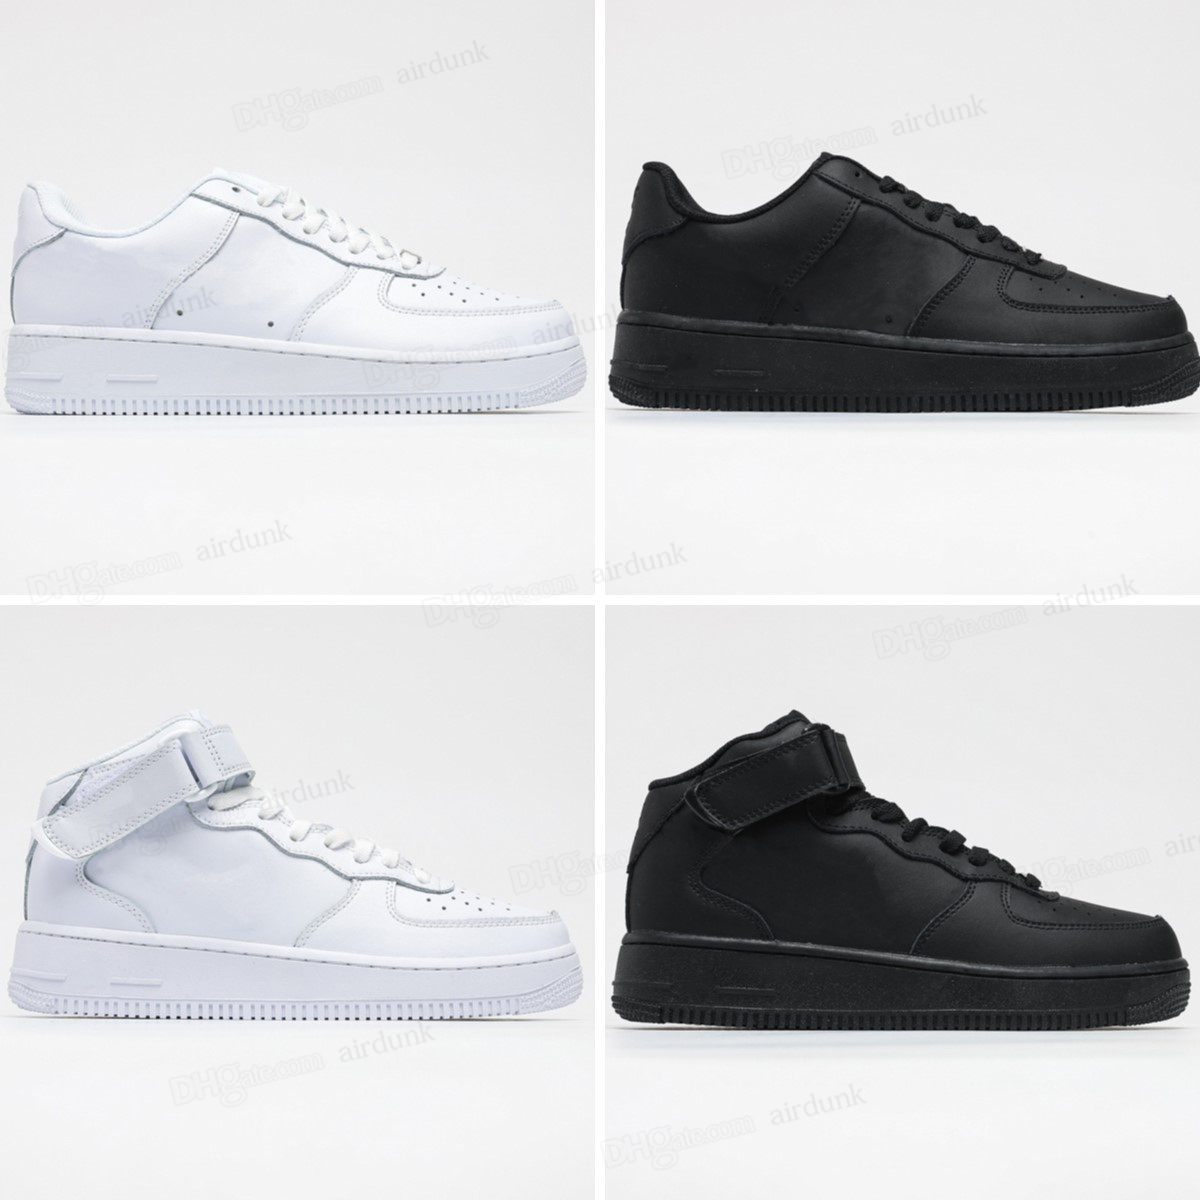 Brand Discount Classic Airforce shoe Men Women AF1 Air Flyline Force 1 Running Shoes Sports Skateboarding Ones Shoess High Low Cut White Black Trainers Sneaker a4Ap#